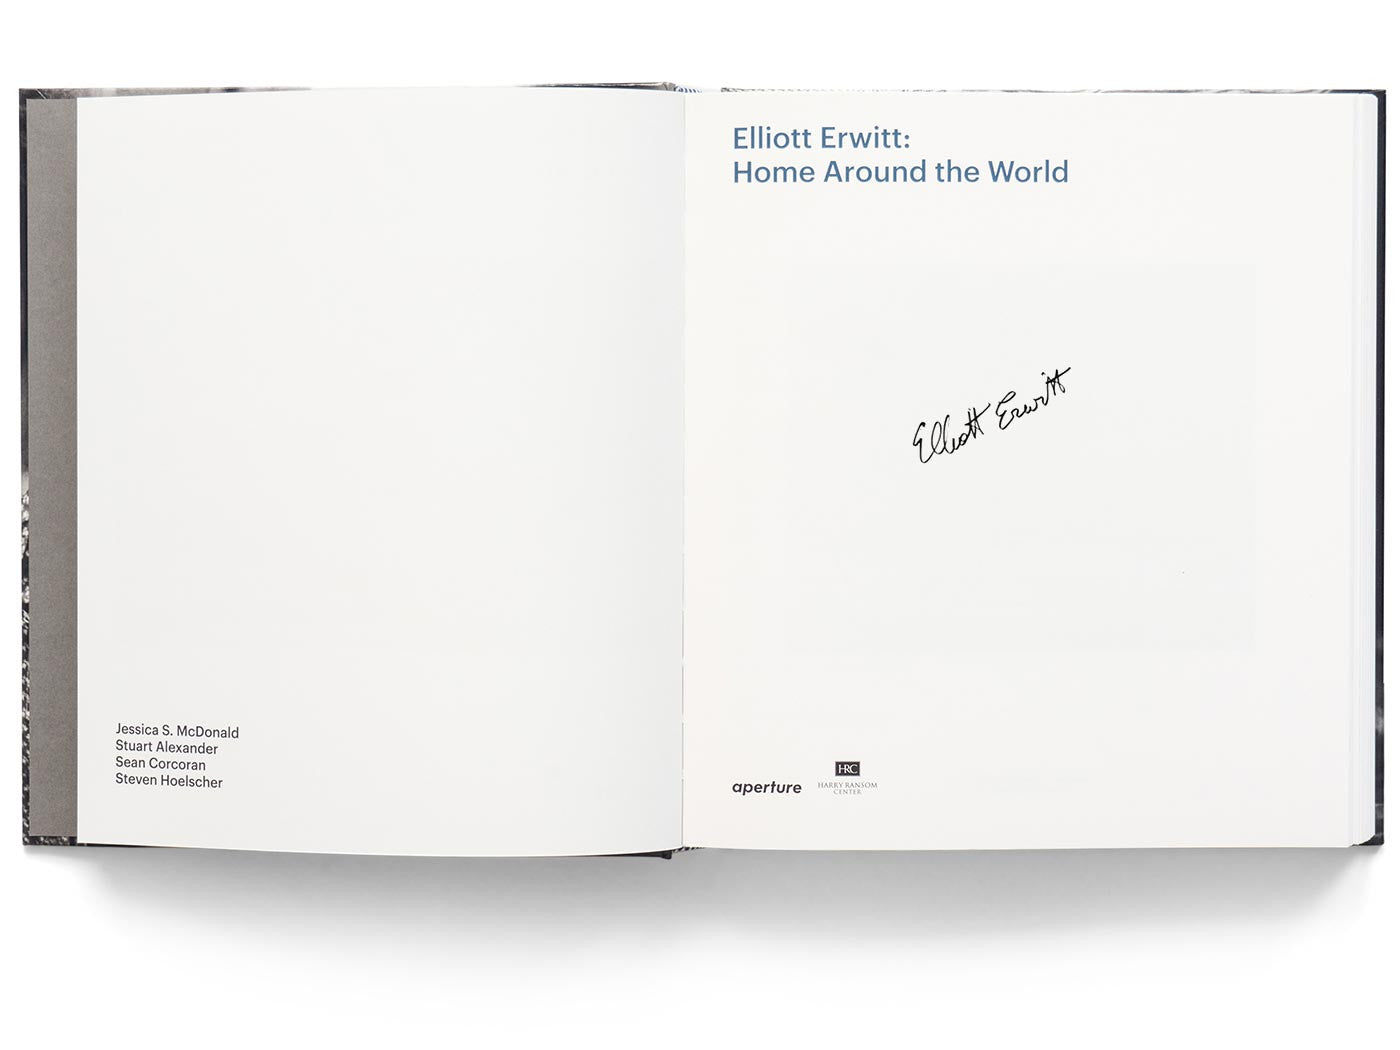 Elliott Erwitt: Home Around the World